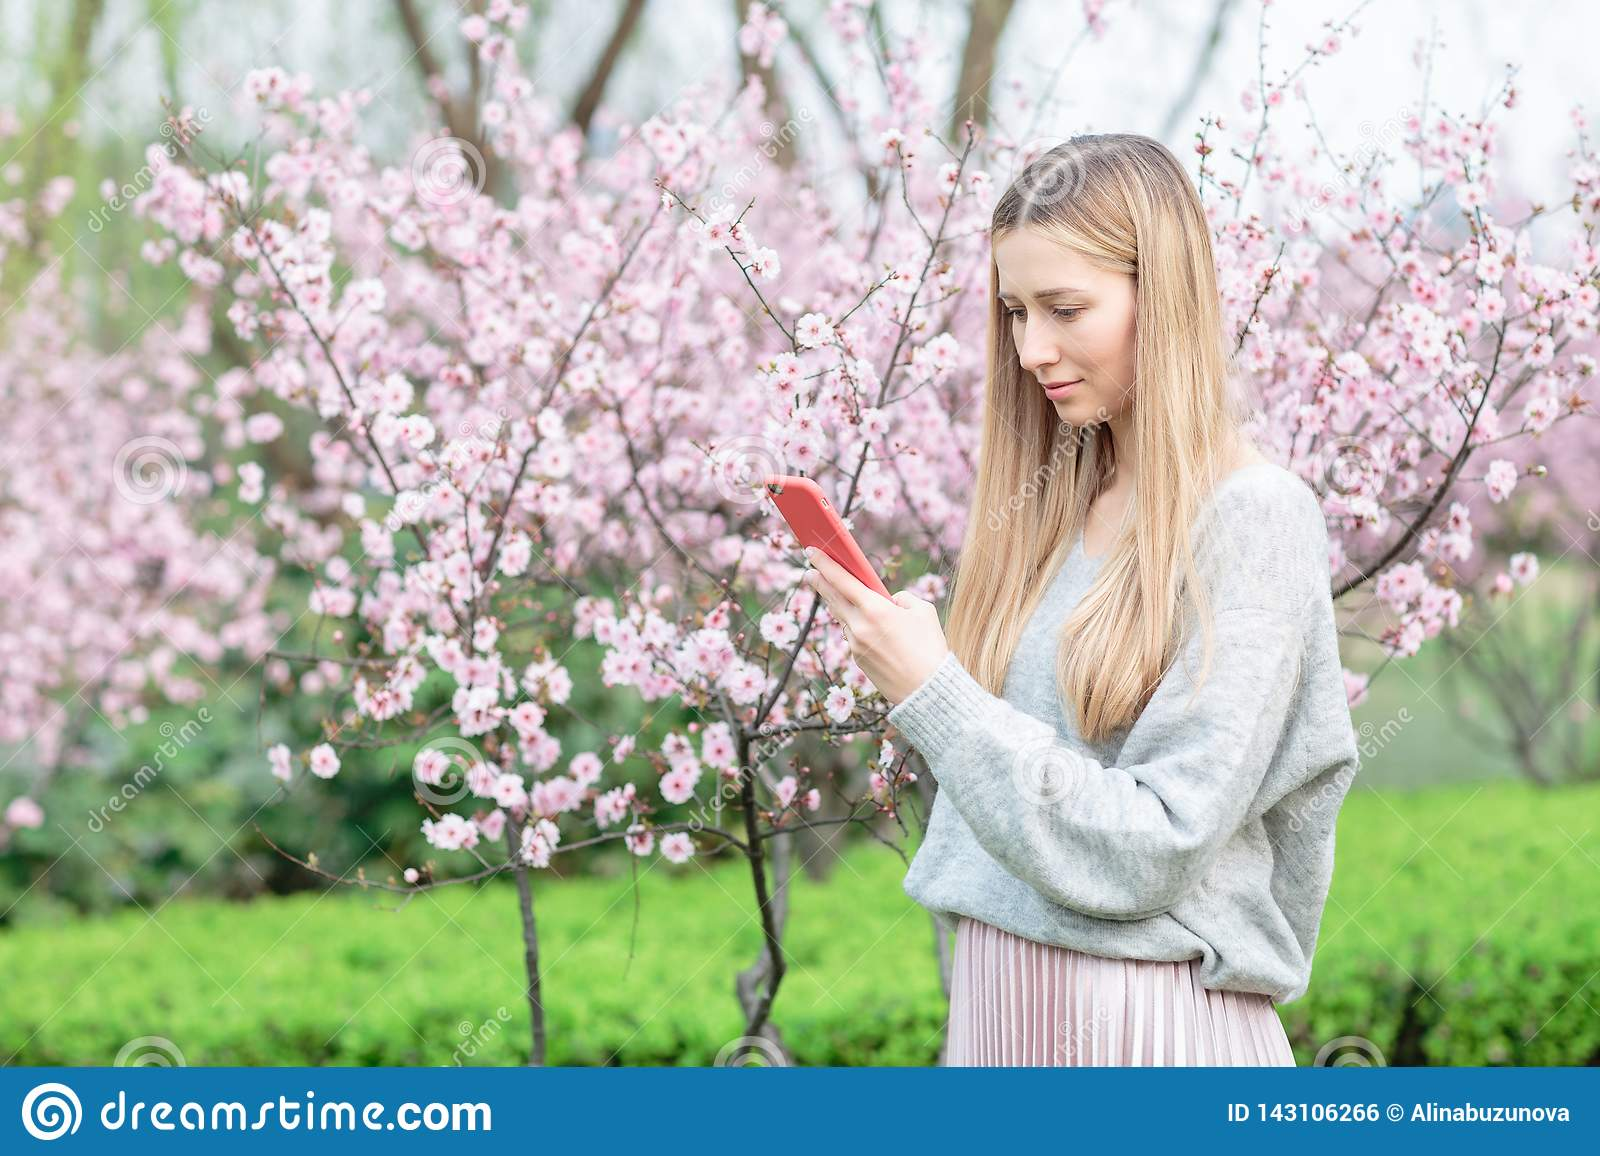 Beautiful young woman with long blonde hair using mobile phone in the park with blooming tree